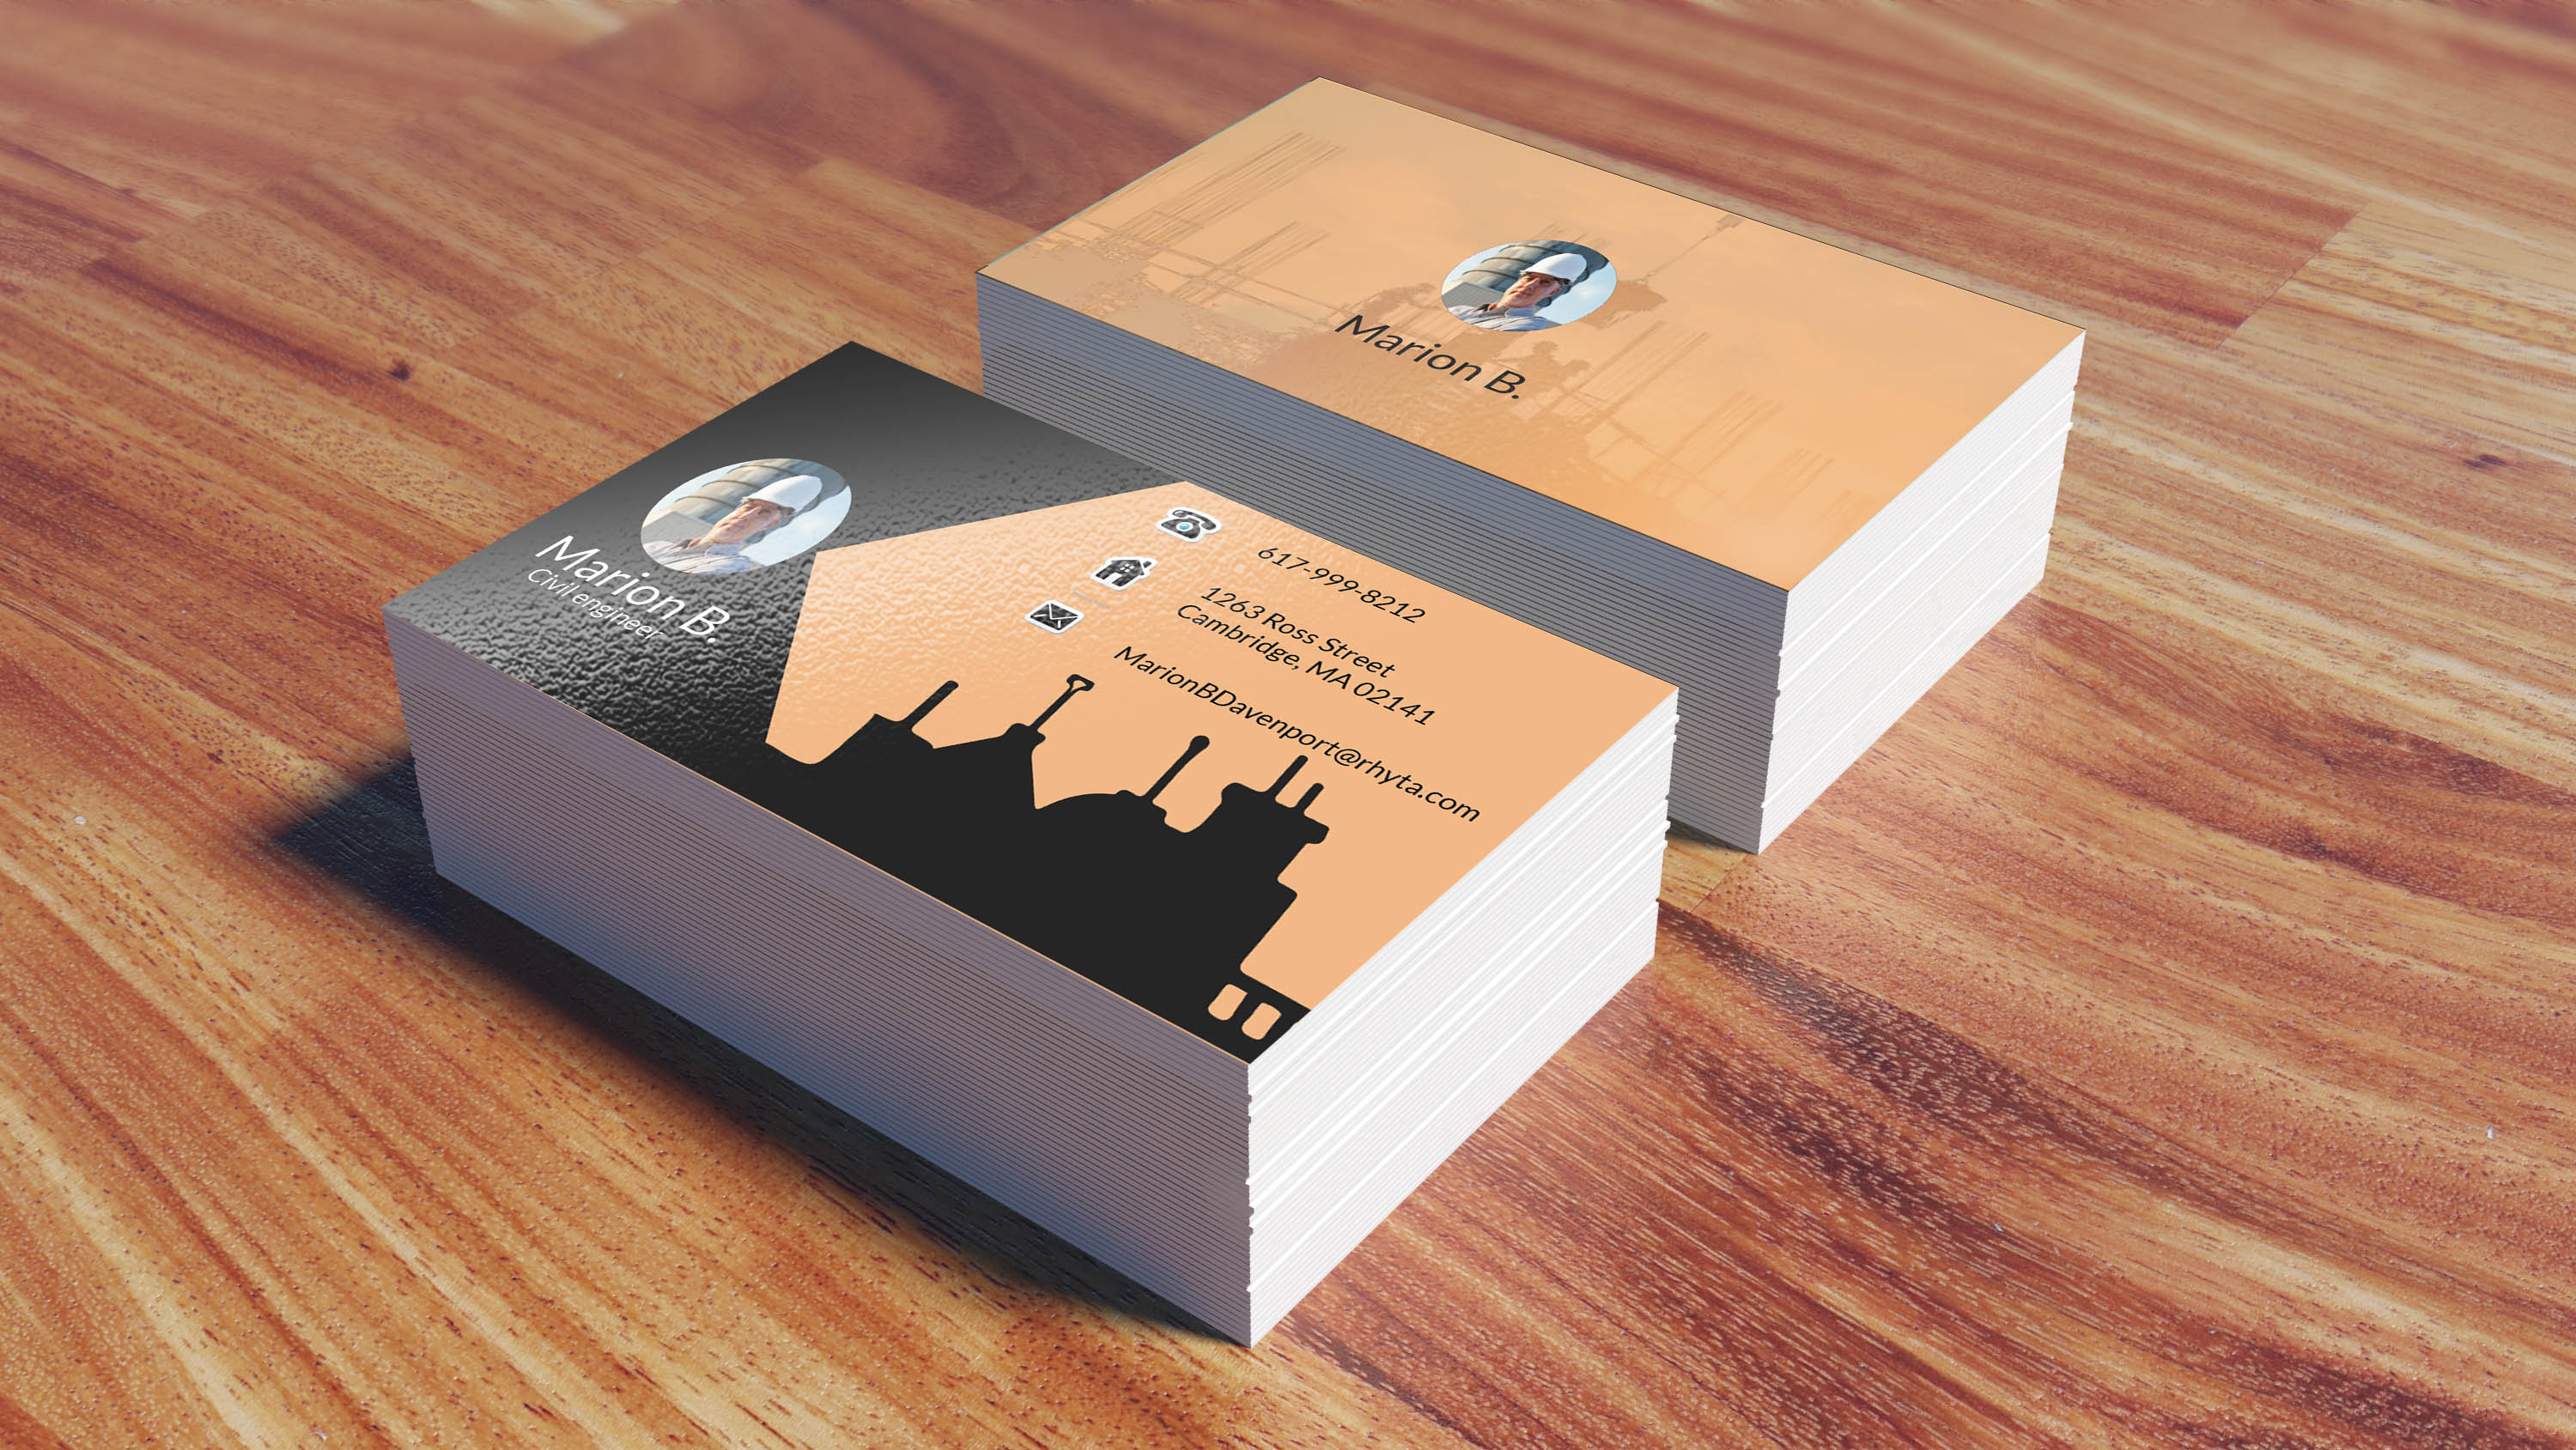 I will give you eyecatching business card with low cost